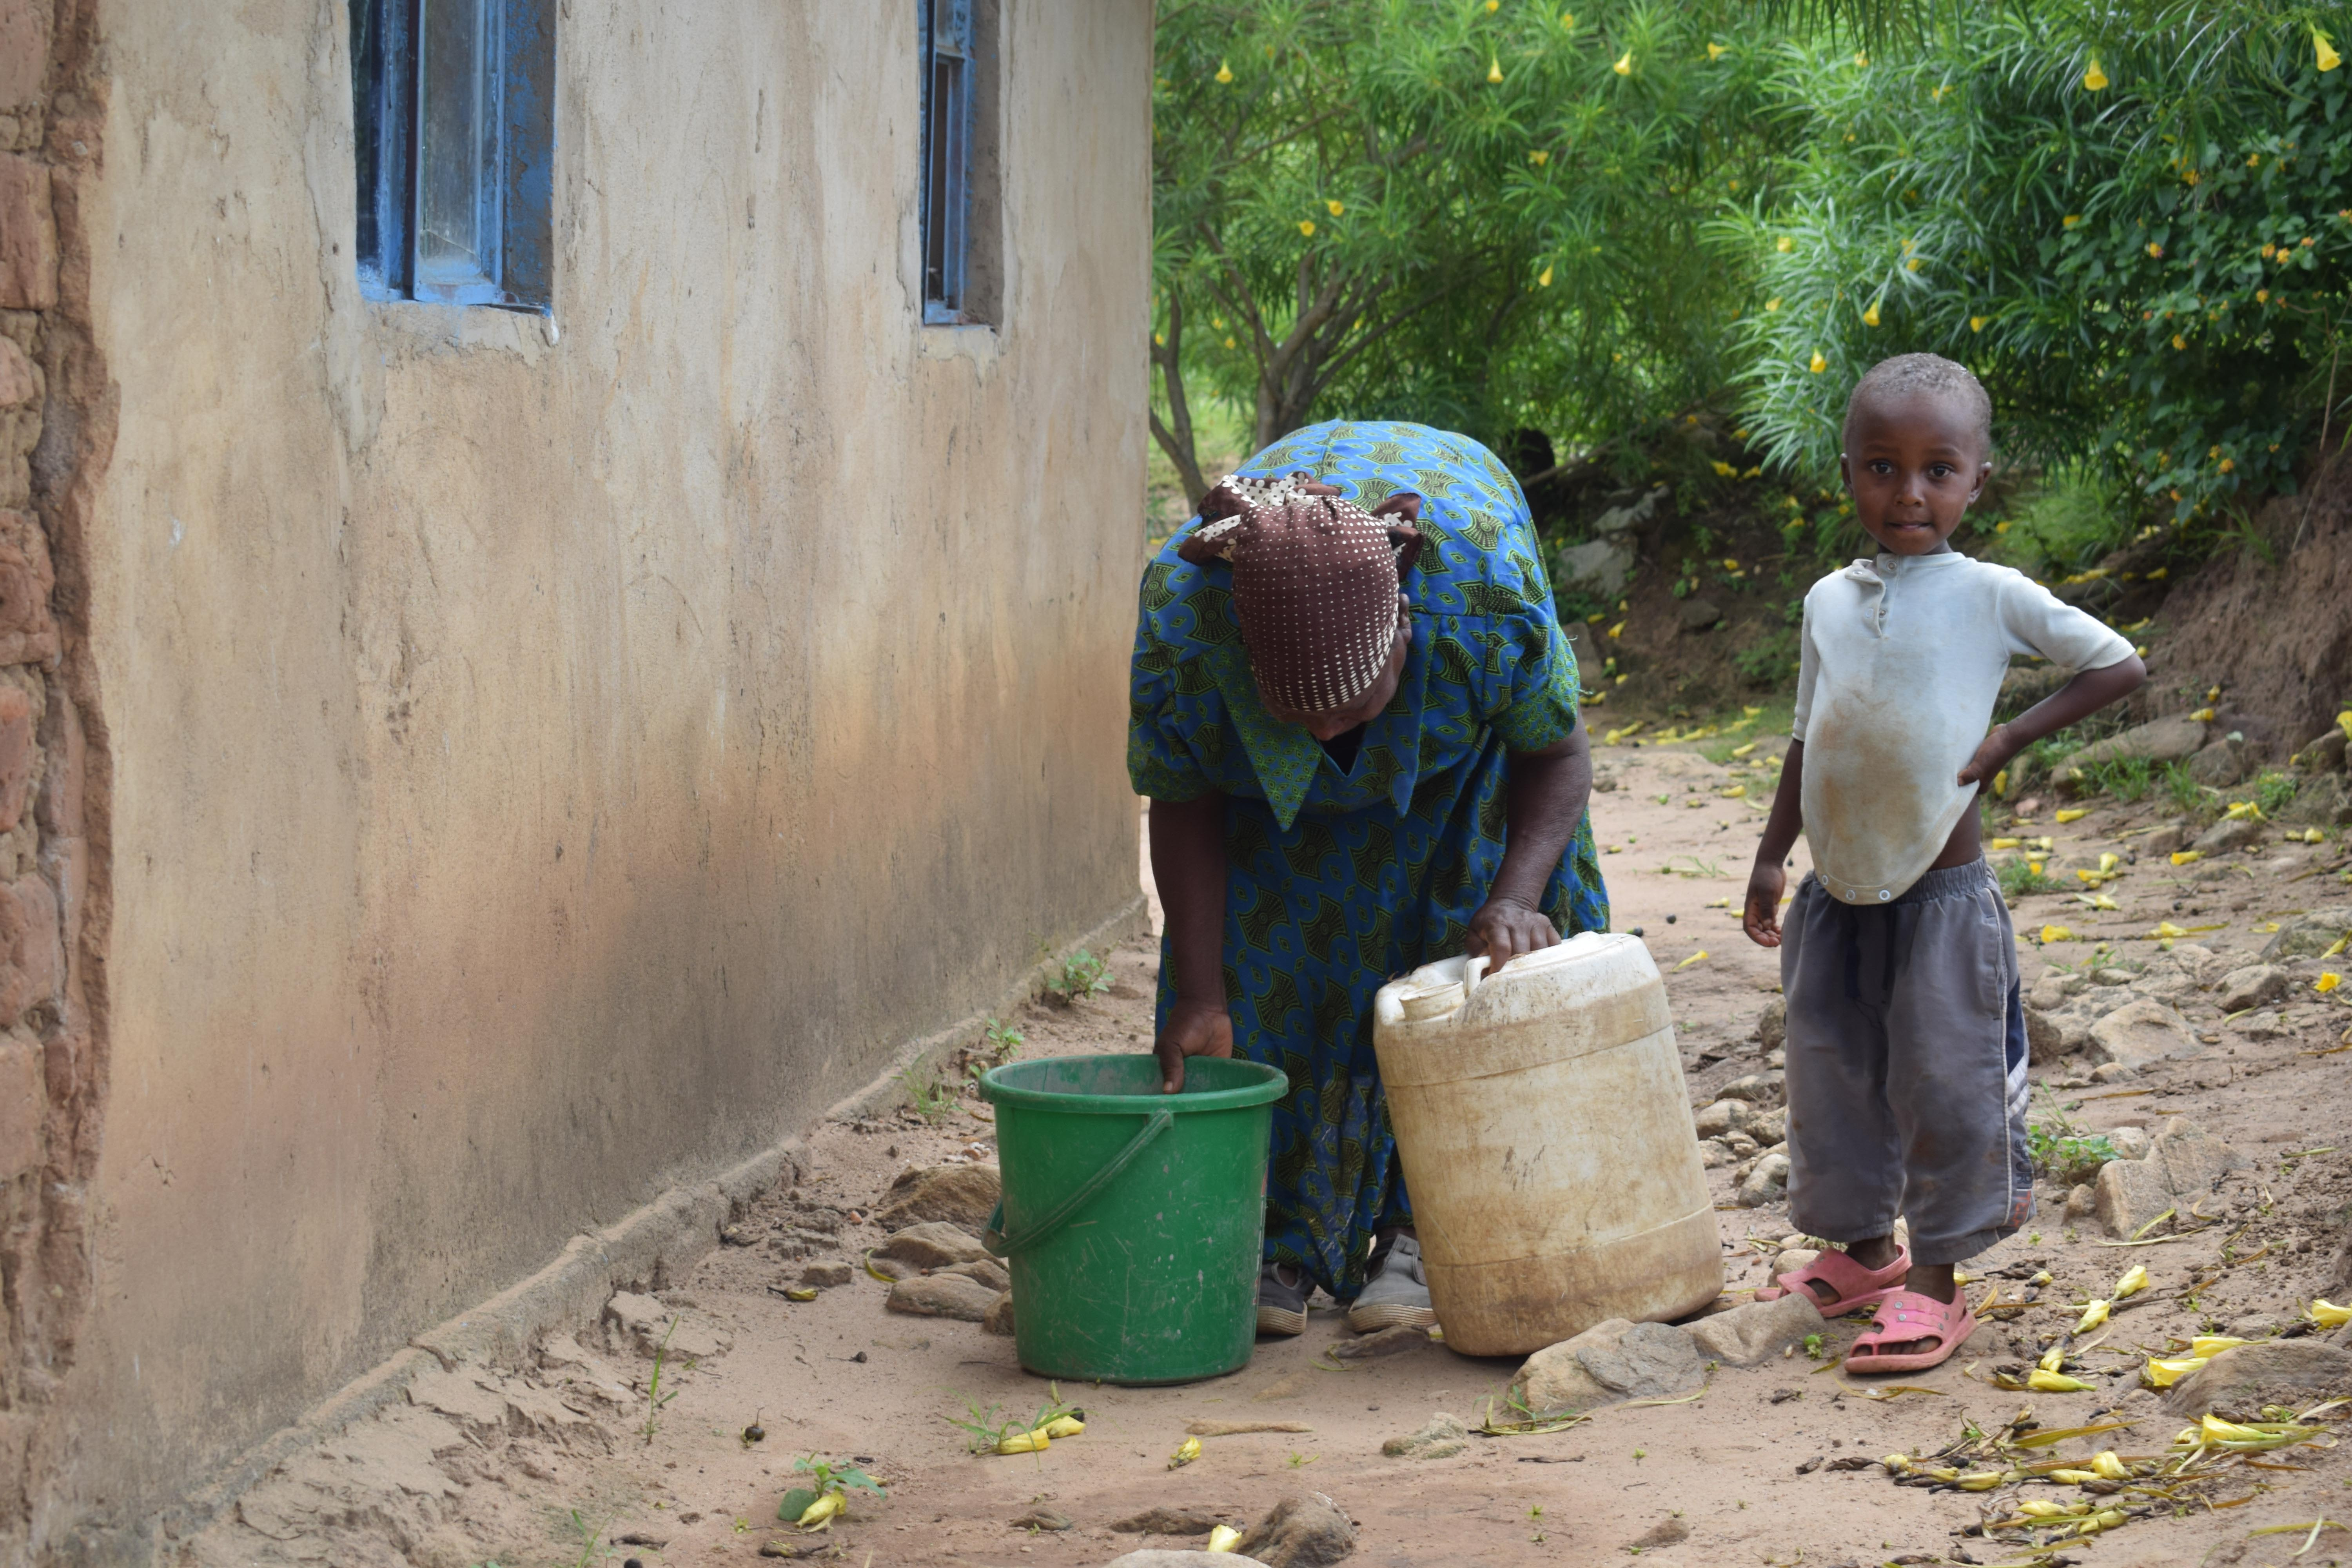 The Water Project : 13-kenya4761-household-1-water-containers